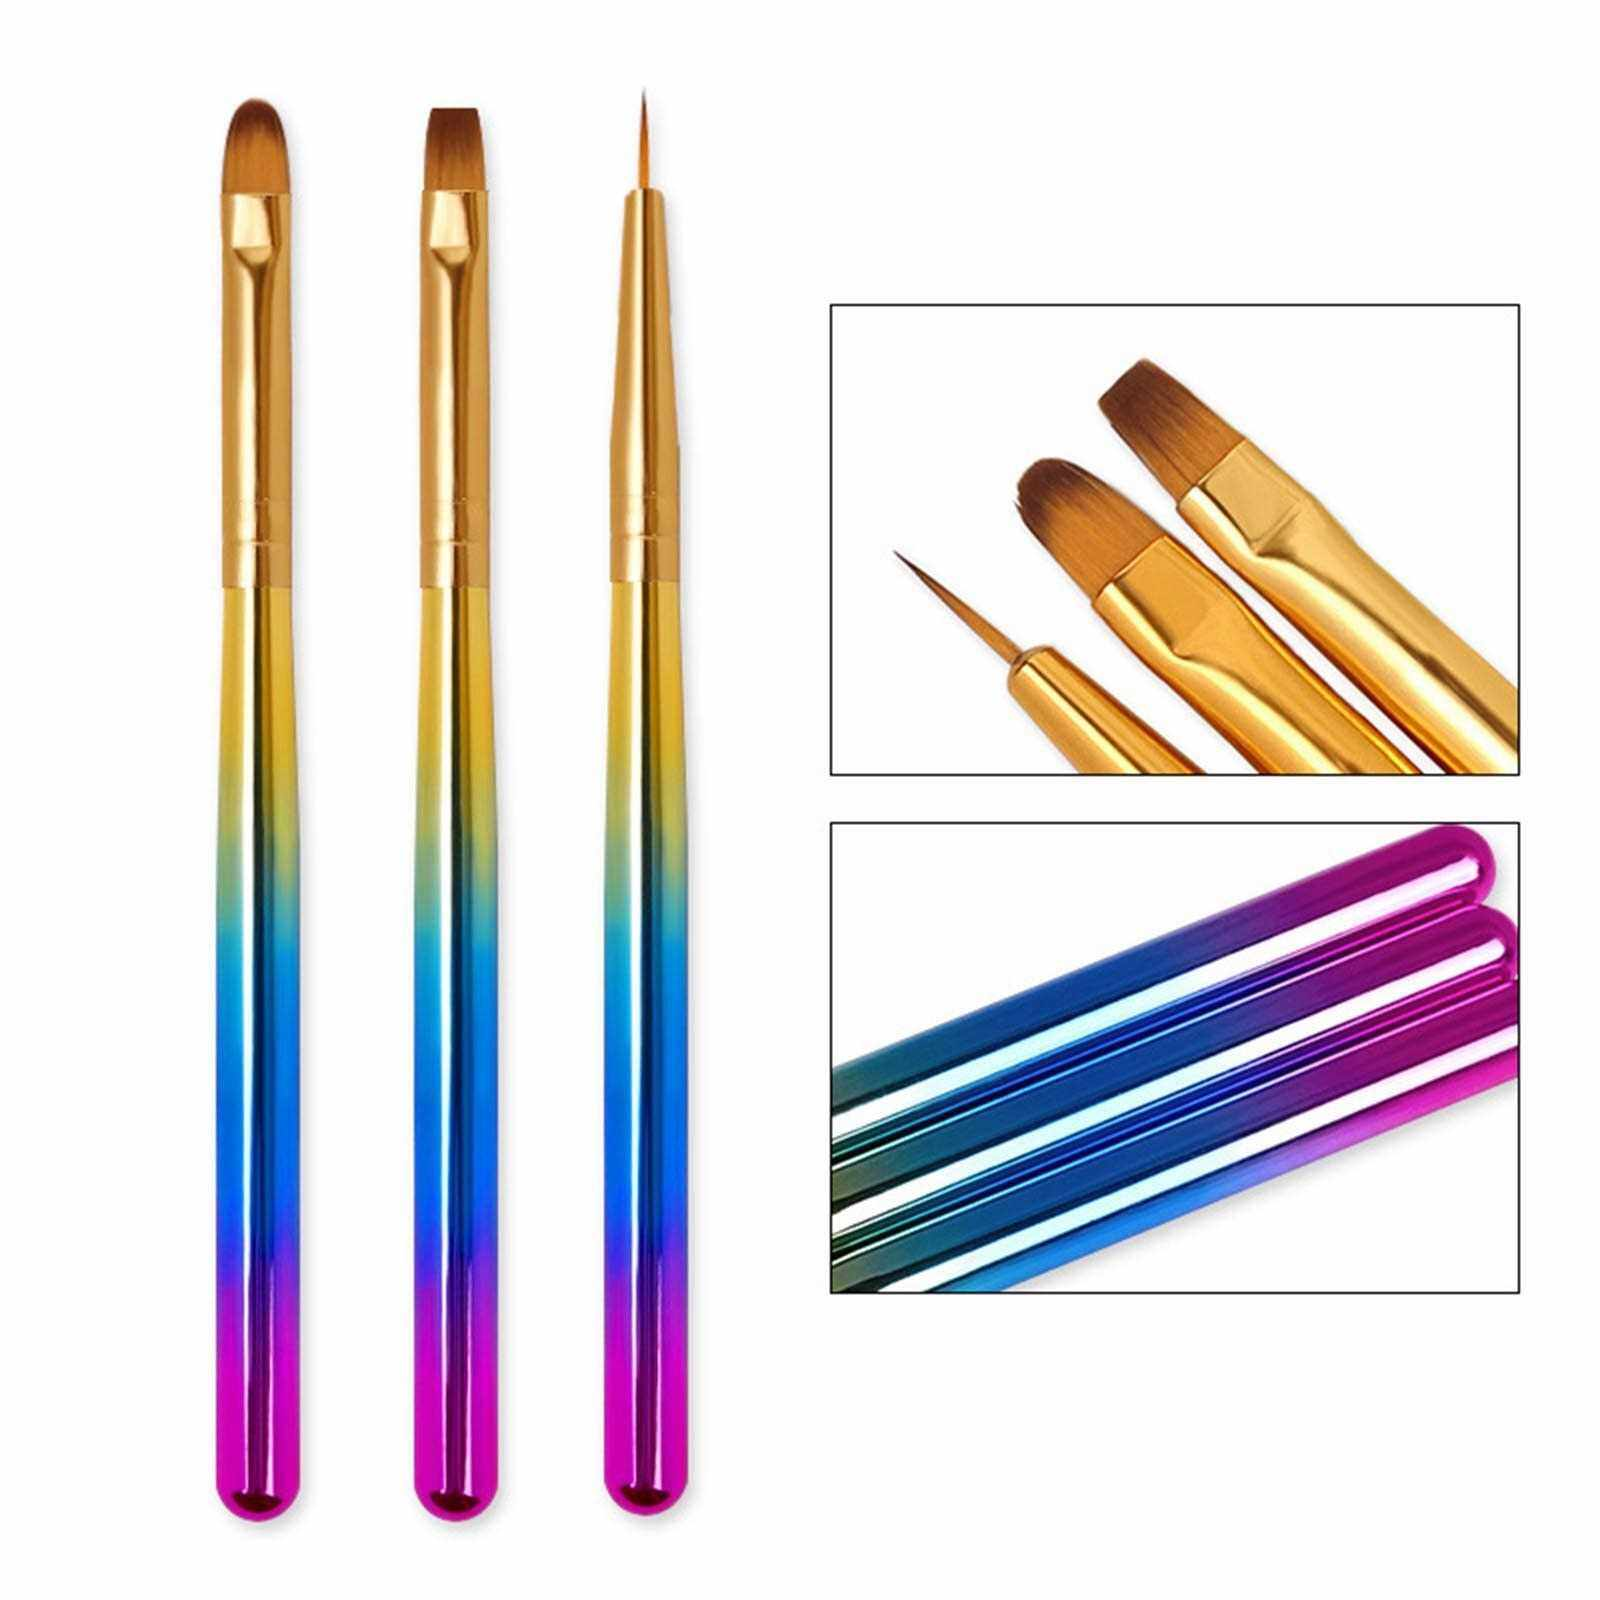 Best Selling 3Pcs/Set Nail Art Brush Painting Drawing Carving Pen Crystal Liner Dotting Acrylic Builder UV Gel Painting Drawing Brush Manicure Tool (Standard)